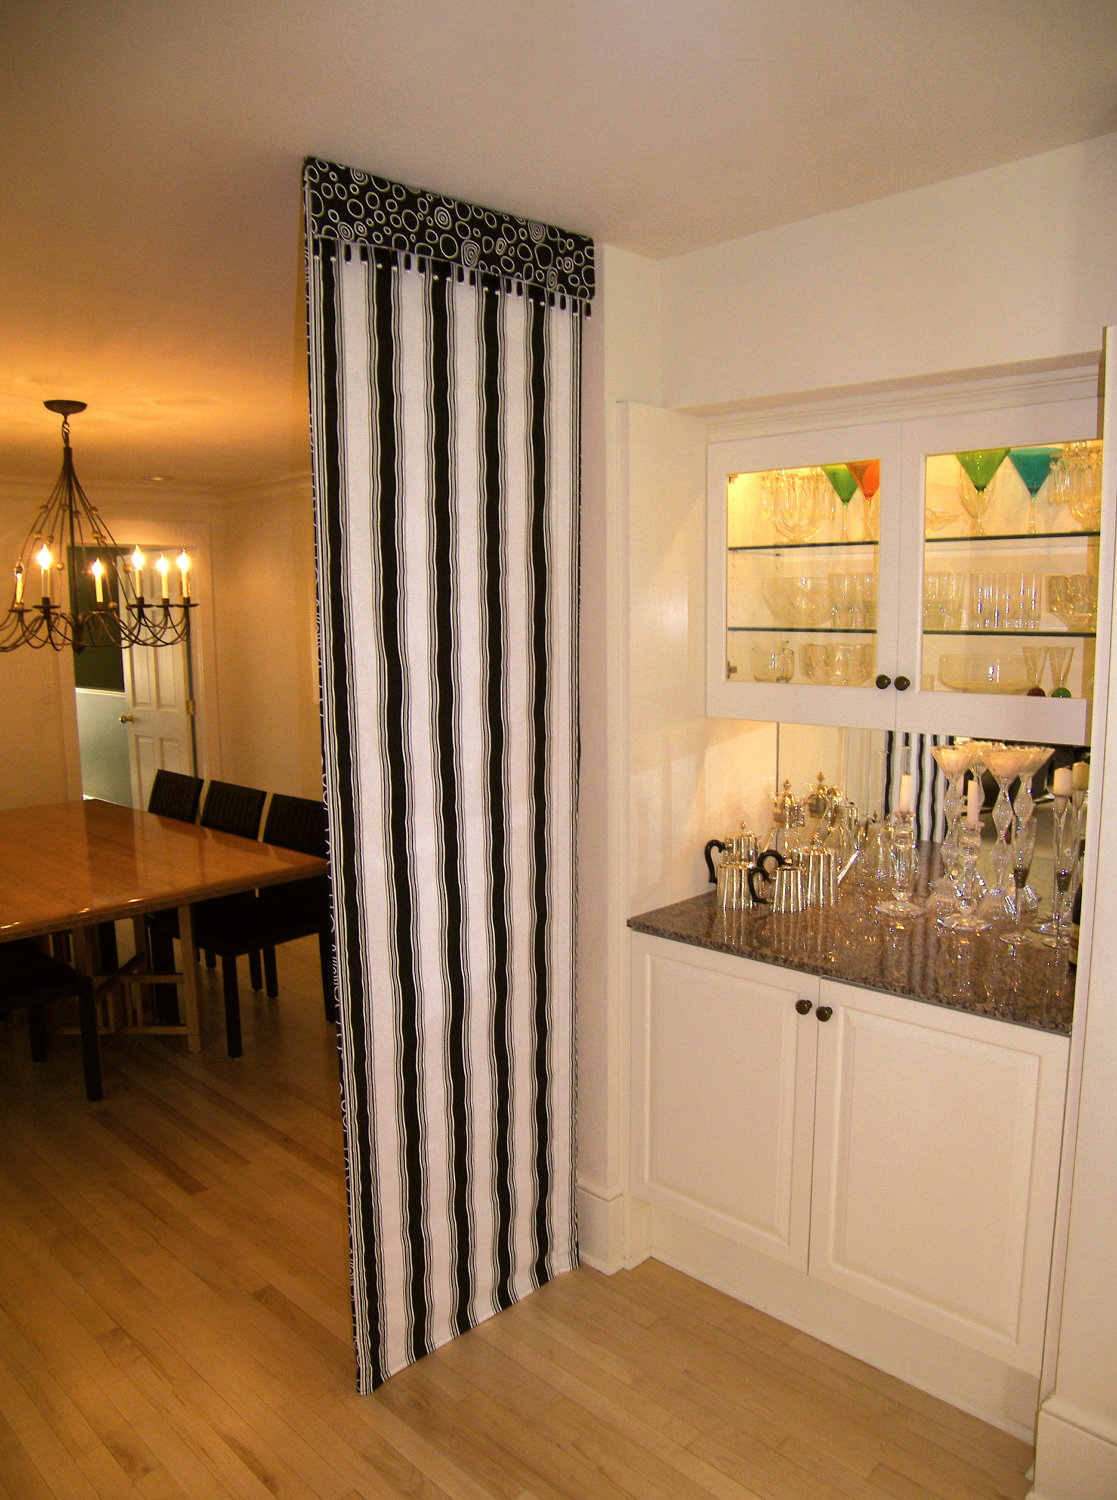 simple room divider idea design in dining room madeof stripe patterned black and white curtain and - Room Dividers Ideas